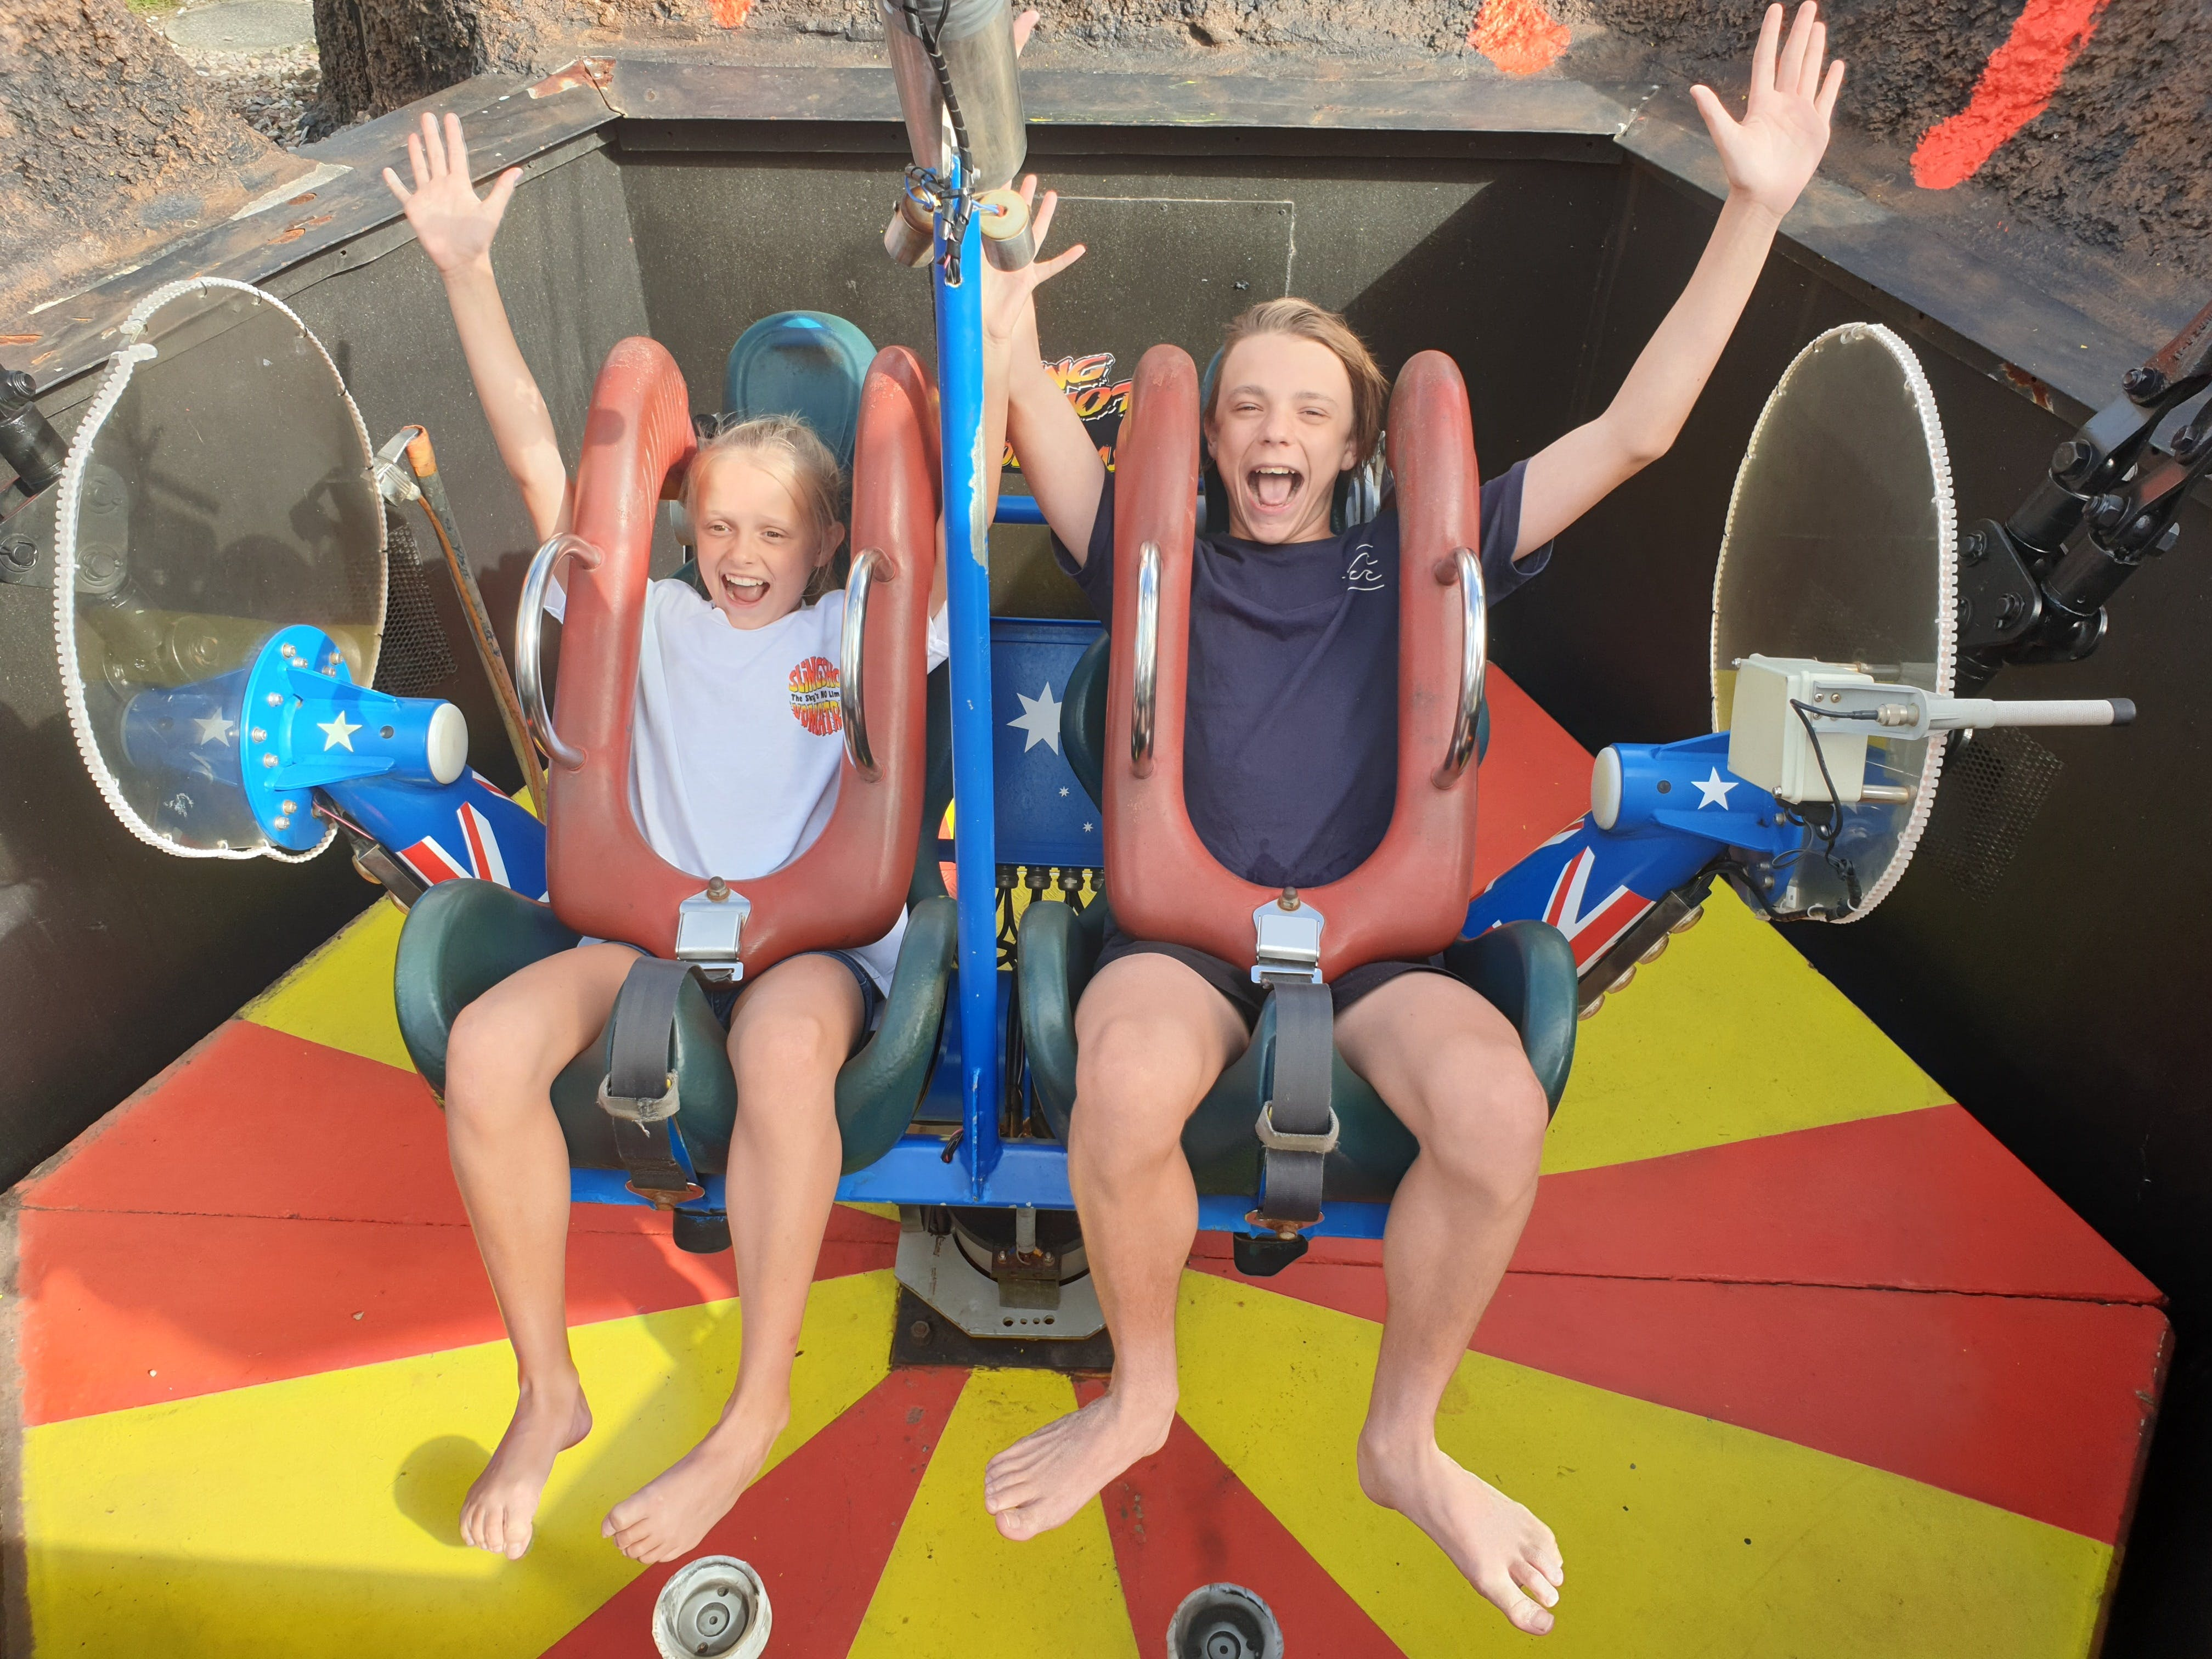 Sling Shot Fun Park Temporarily Closed due to COVID-19 - Palm Beach Accommodation